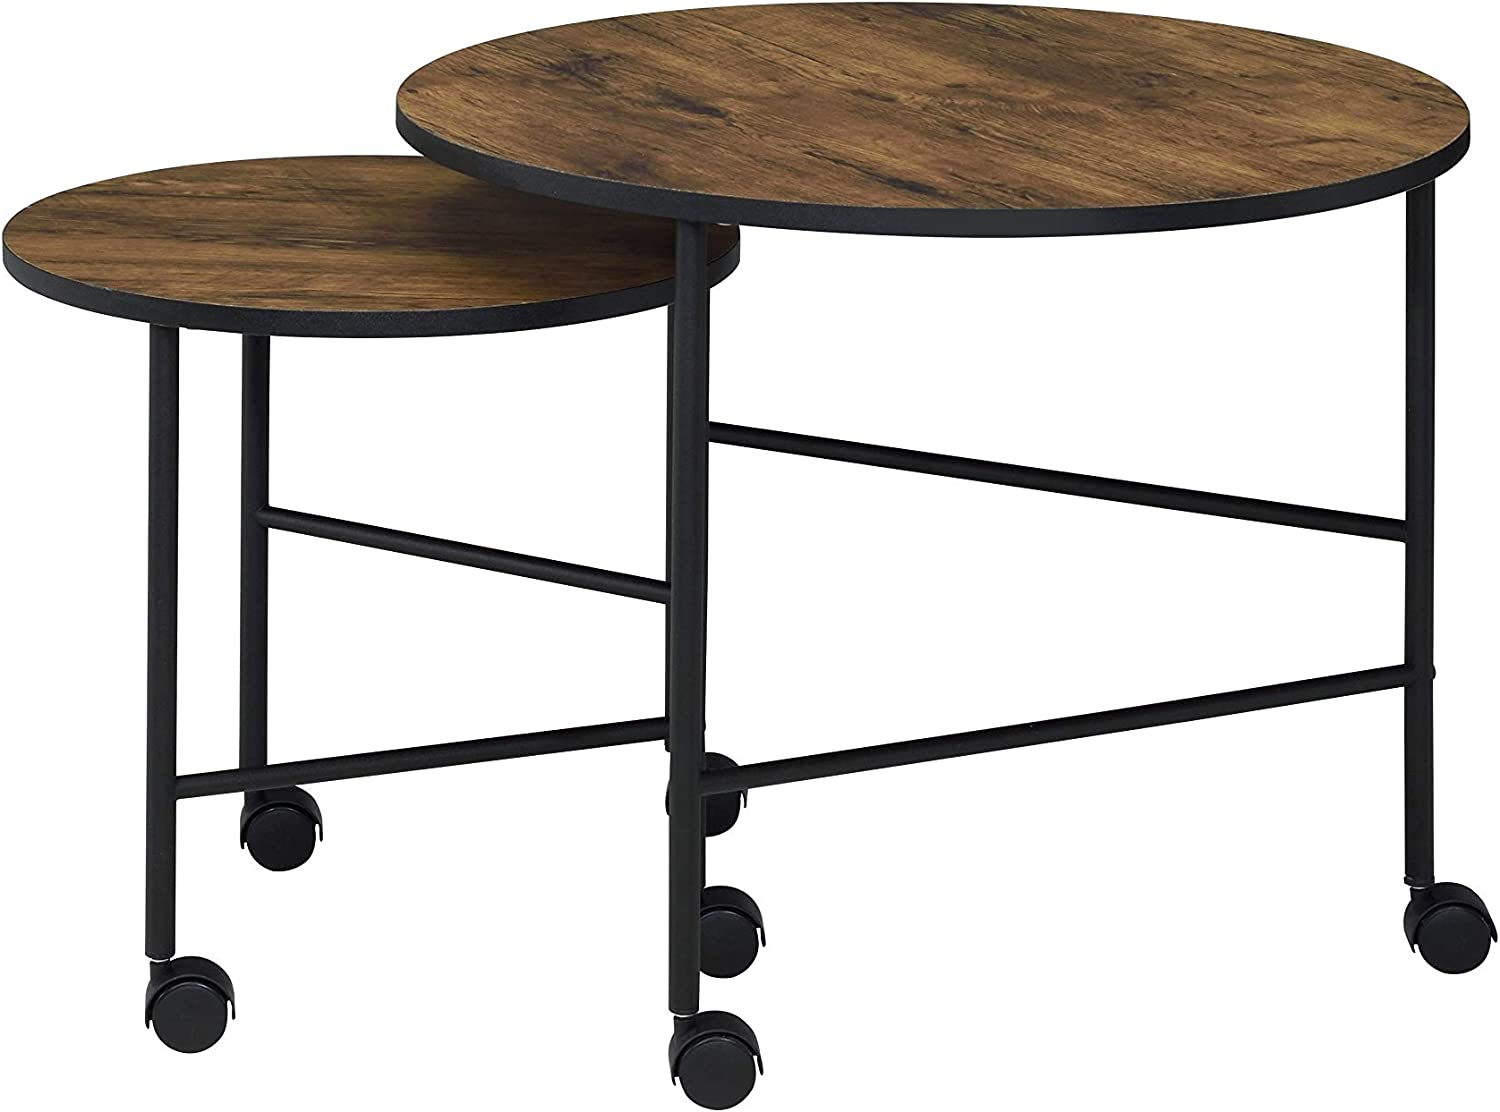 Vintage Oak and Black Knocbel Industrial Mobile Nesting Coffee Table for Living Room 2 Pieces Coffee Table Set with Wooden Top Metal Frame /& Wheels